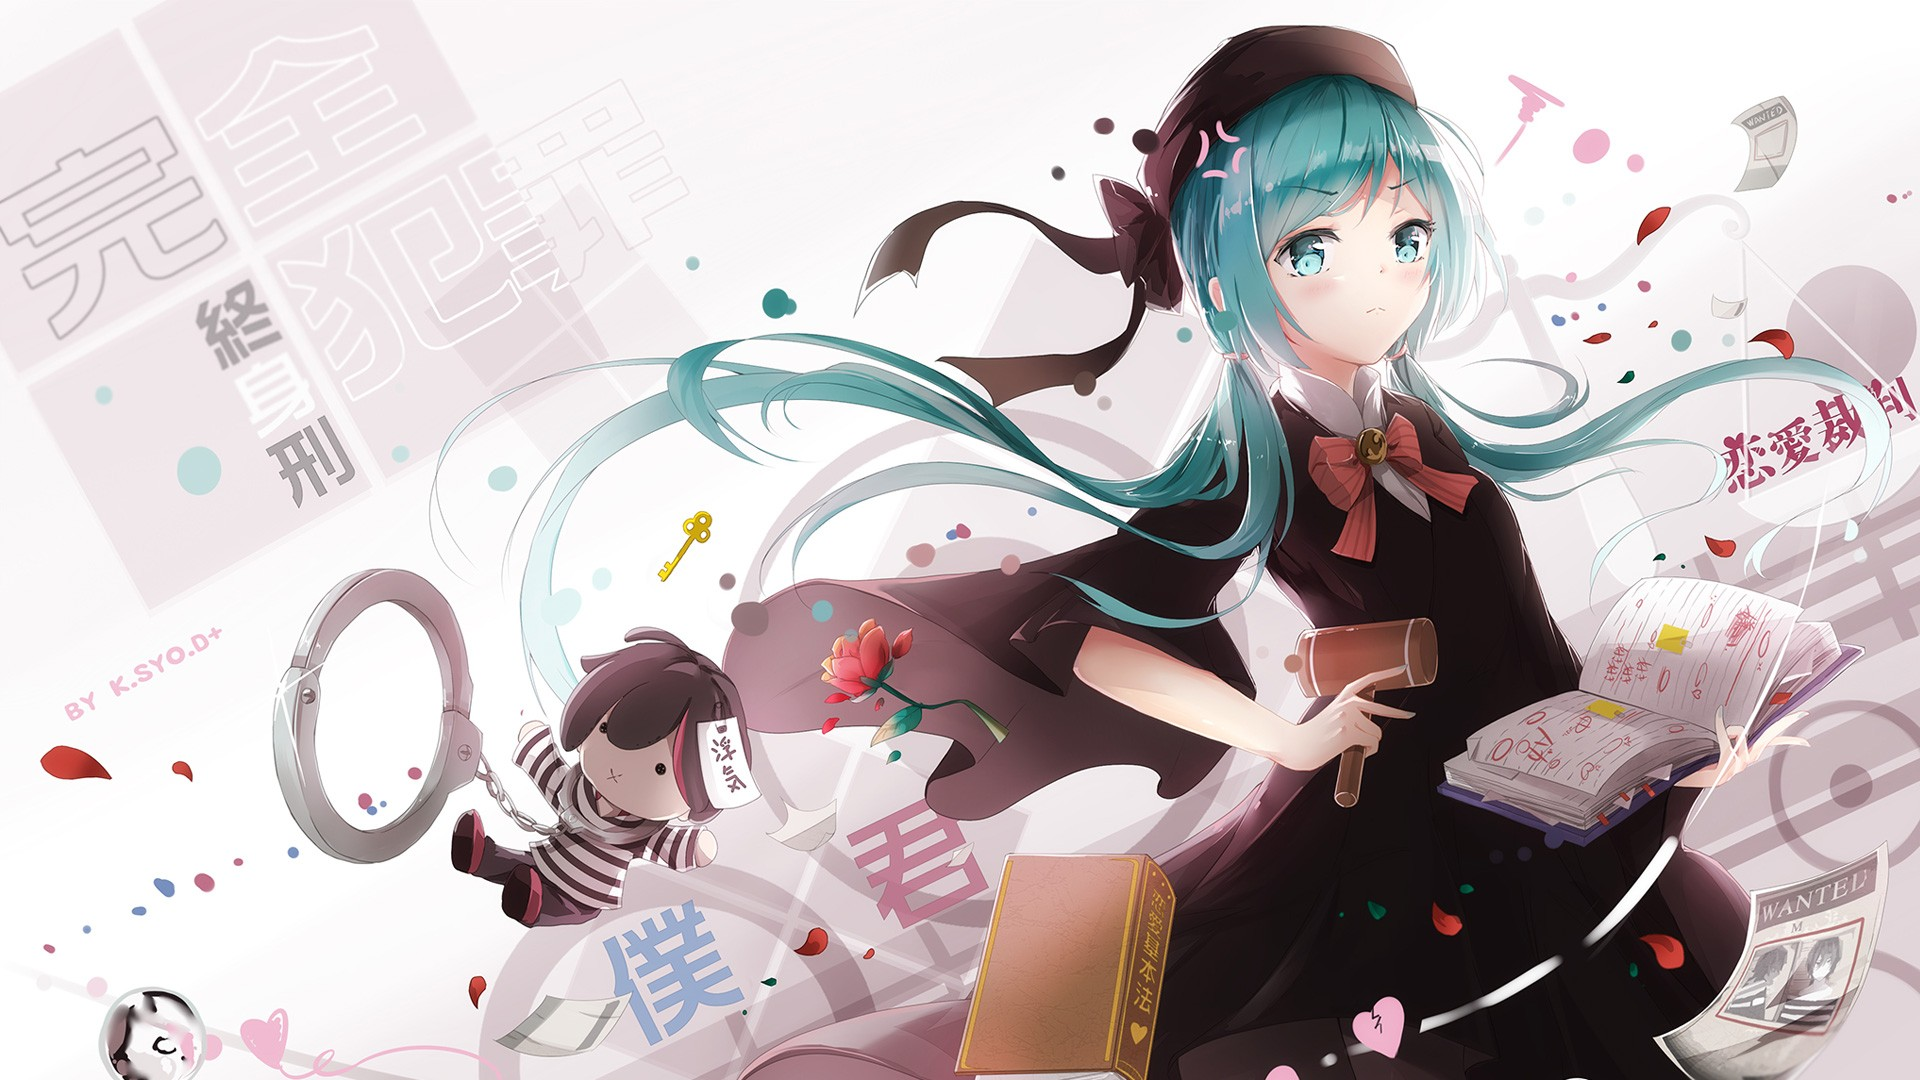 Fantasy Girl Wallpaper Full Hd Vocaloid Hatsune Miku Wallpapers Hd Wallpapers Id 17708